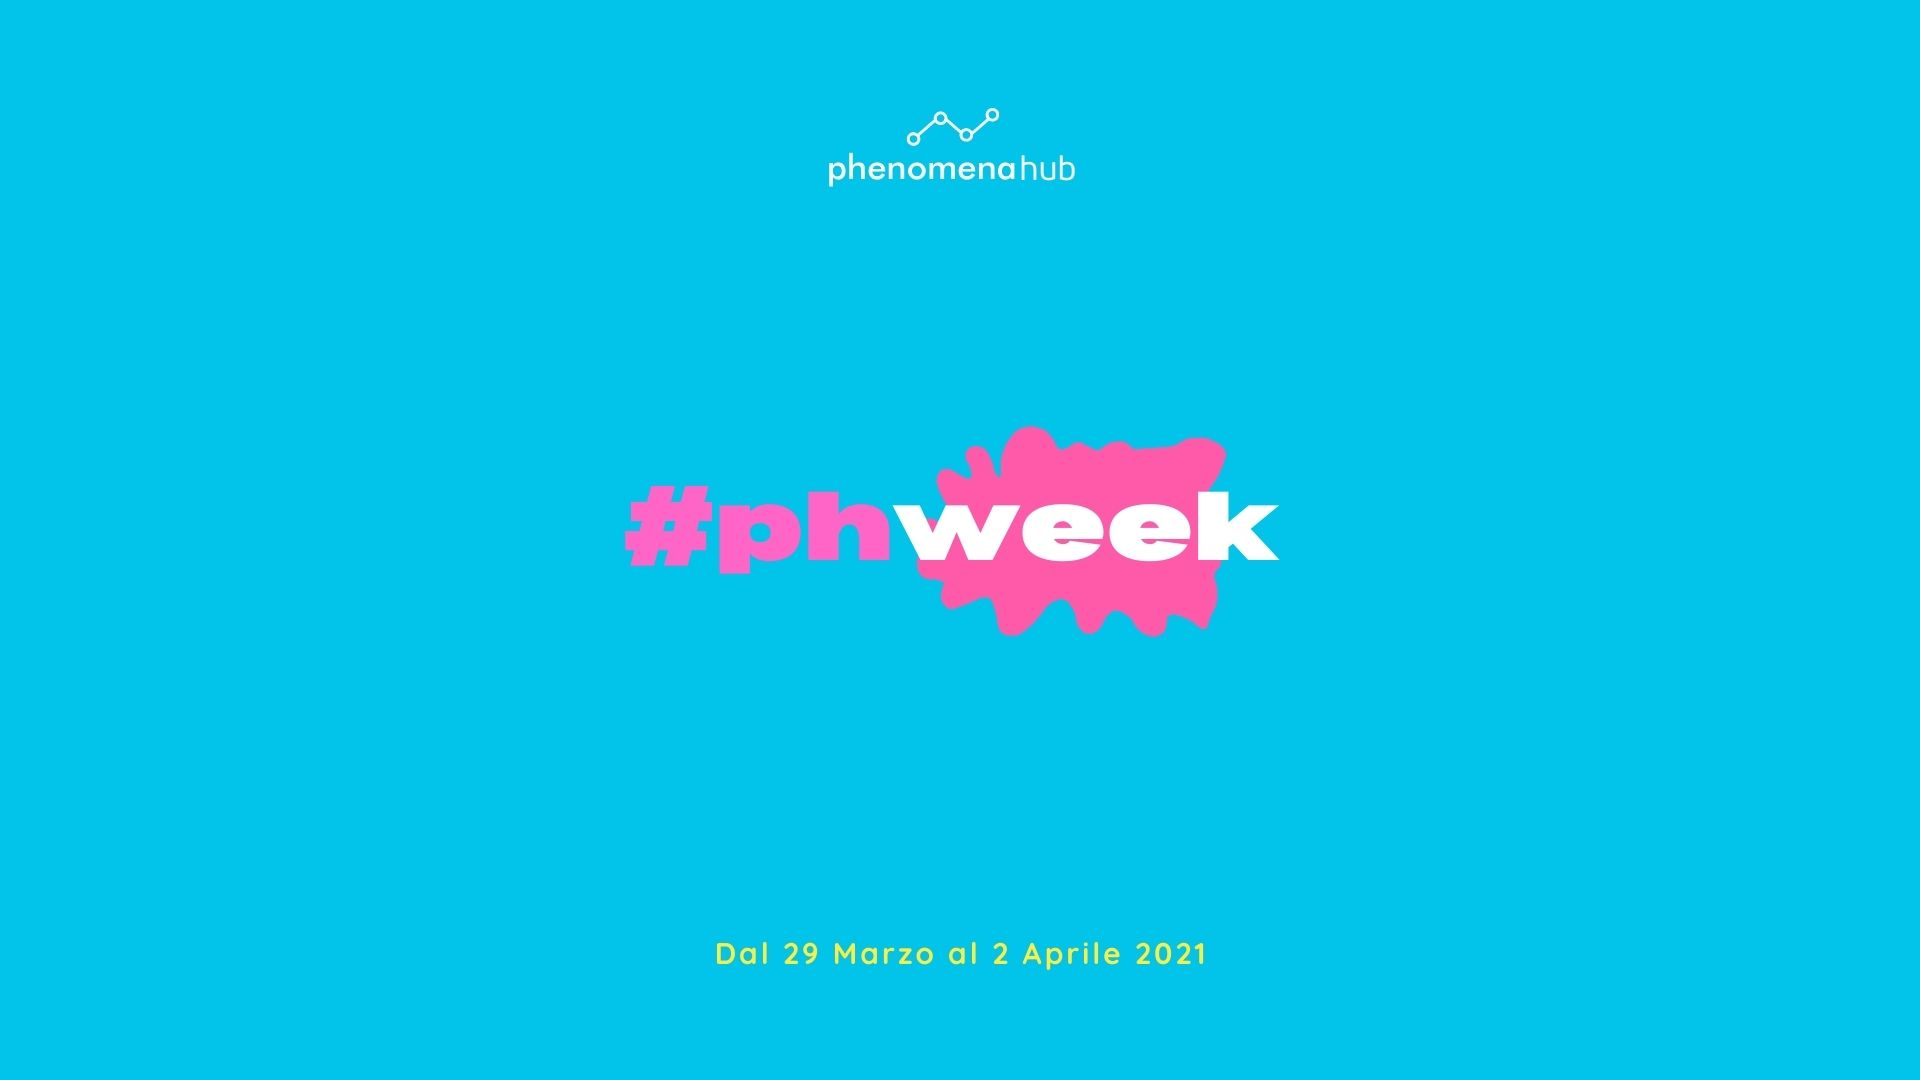 Phenomena WEEK 2021